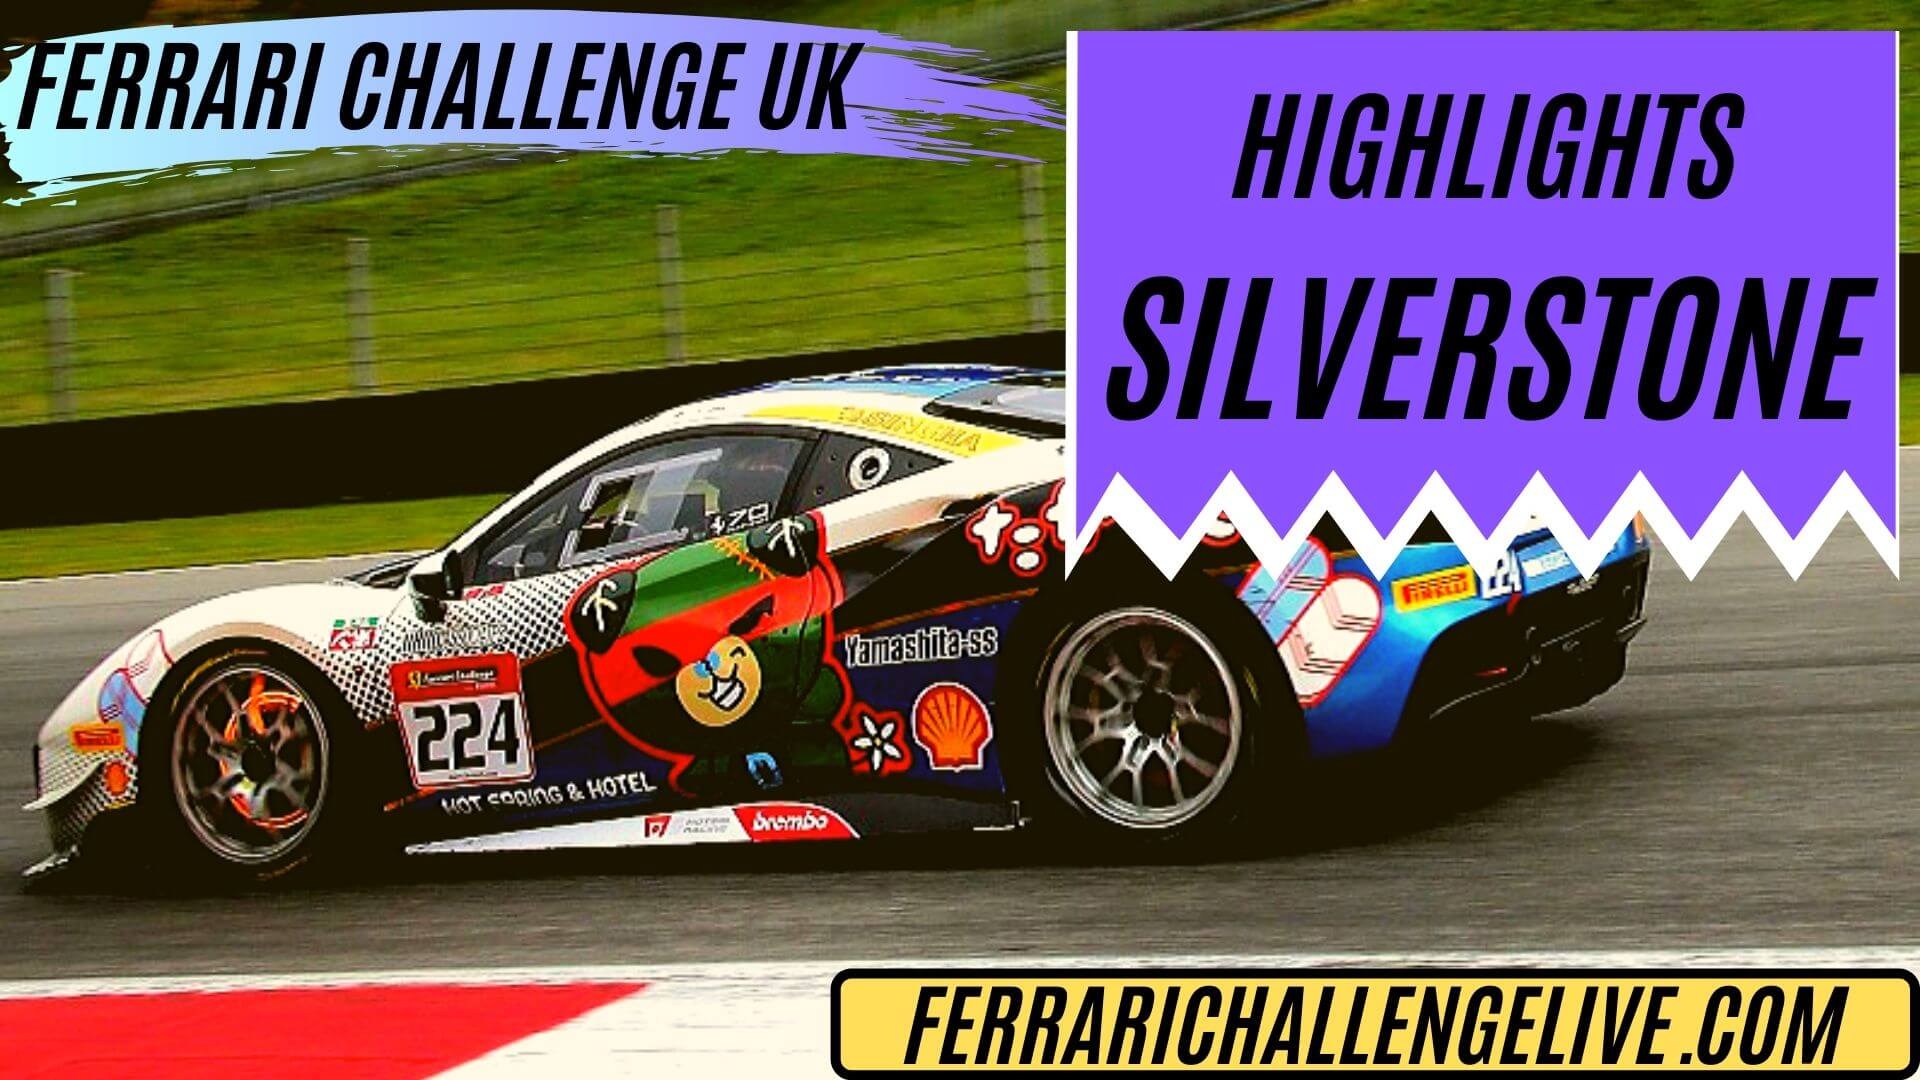 Silverstone Ferrari Challenge UK Highlights 2019